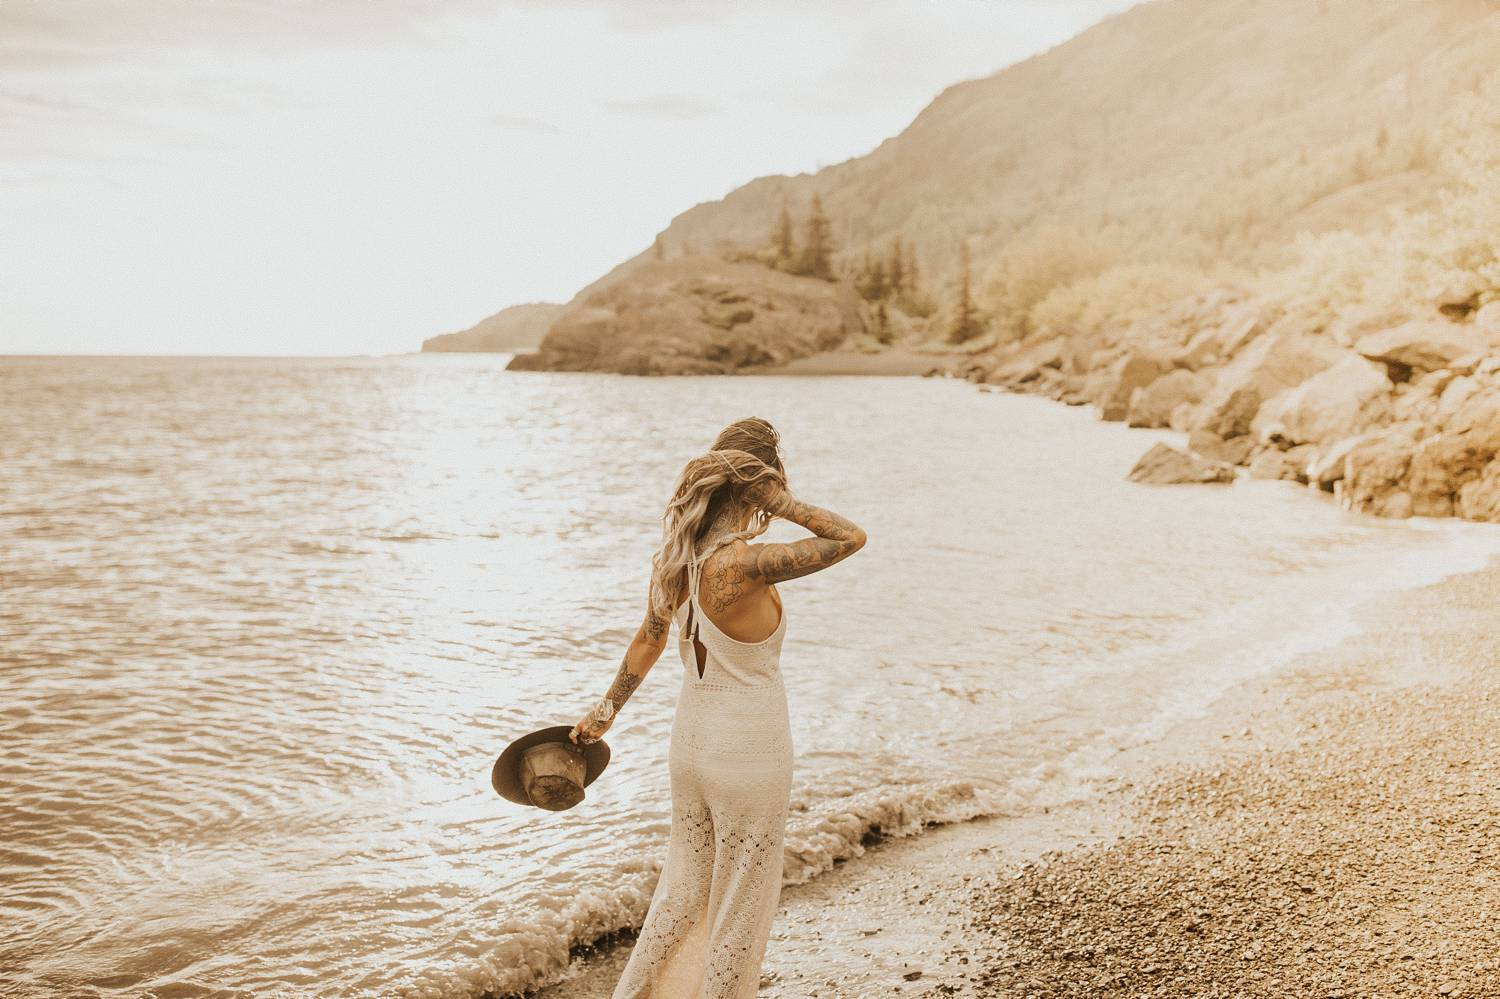 A woman in a white lace jumpsuit carries a felt had in one hand while holding her hair back with the other. She is strolling along the shore of a mountain lake.